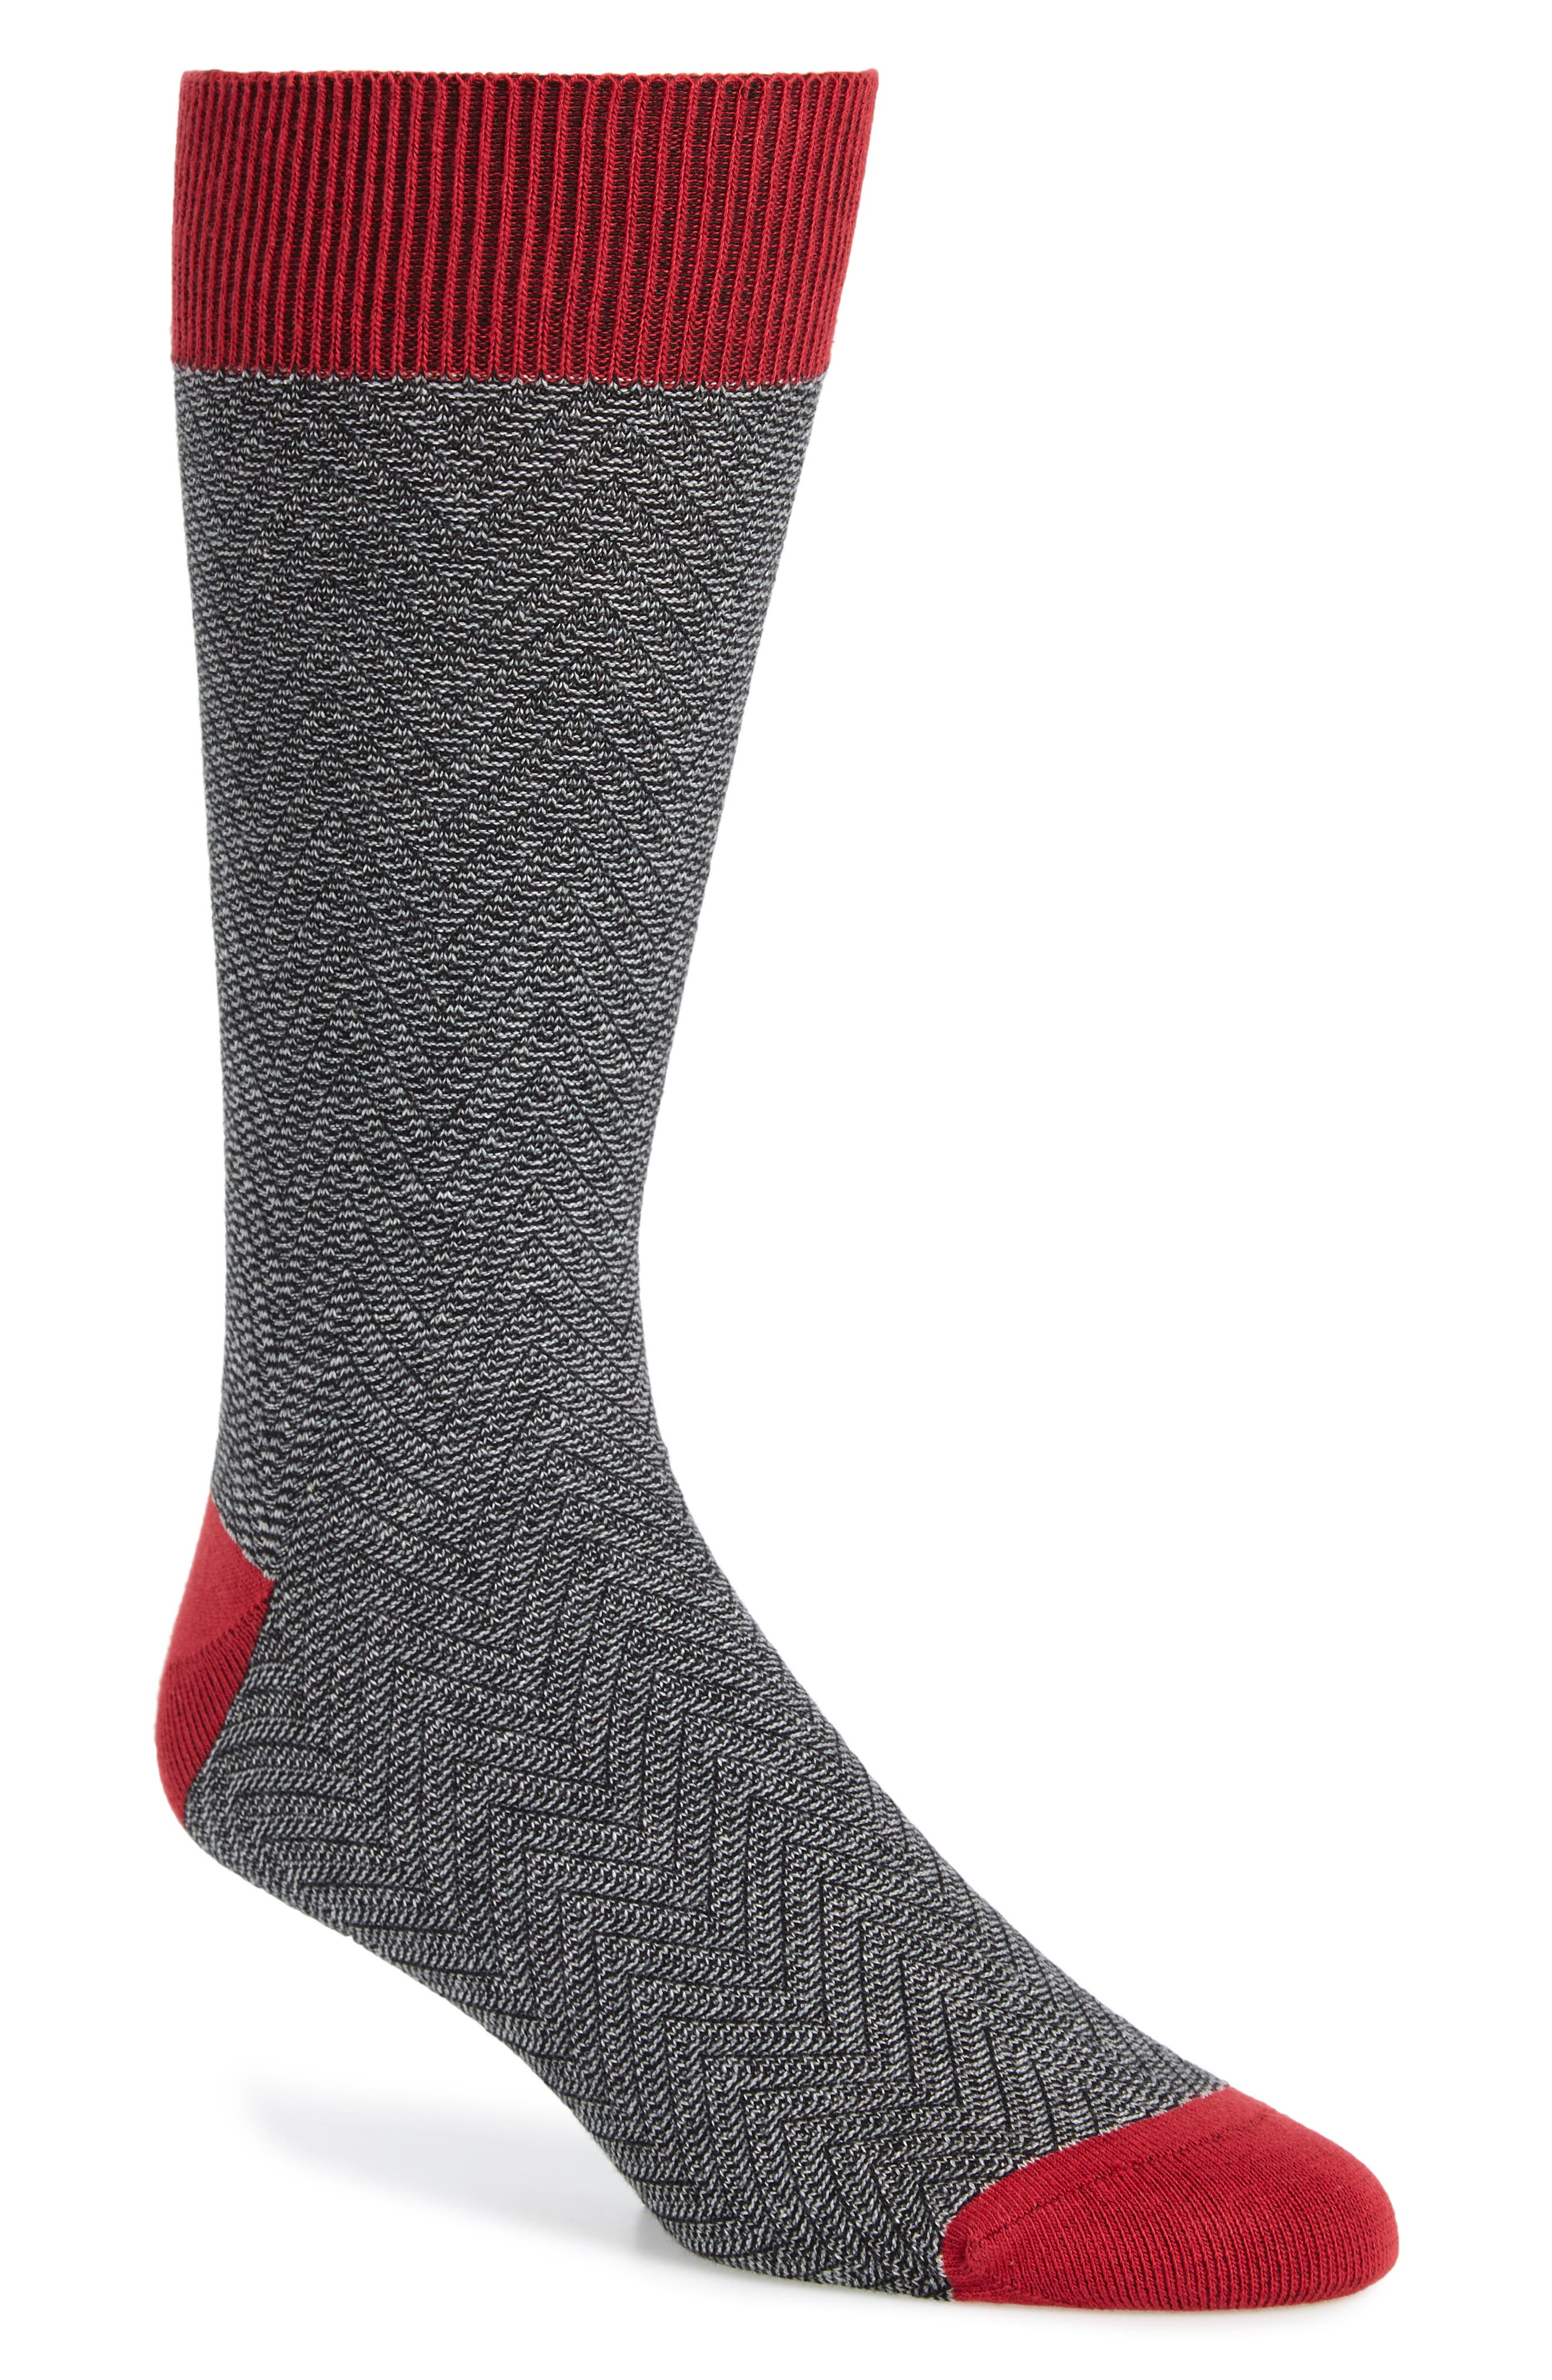 Doni Herringbone Socks,                             Main thumbnail 1, color,                             GREY MARLED